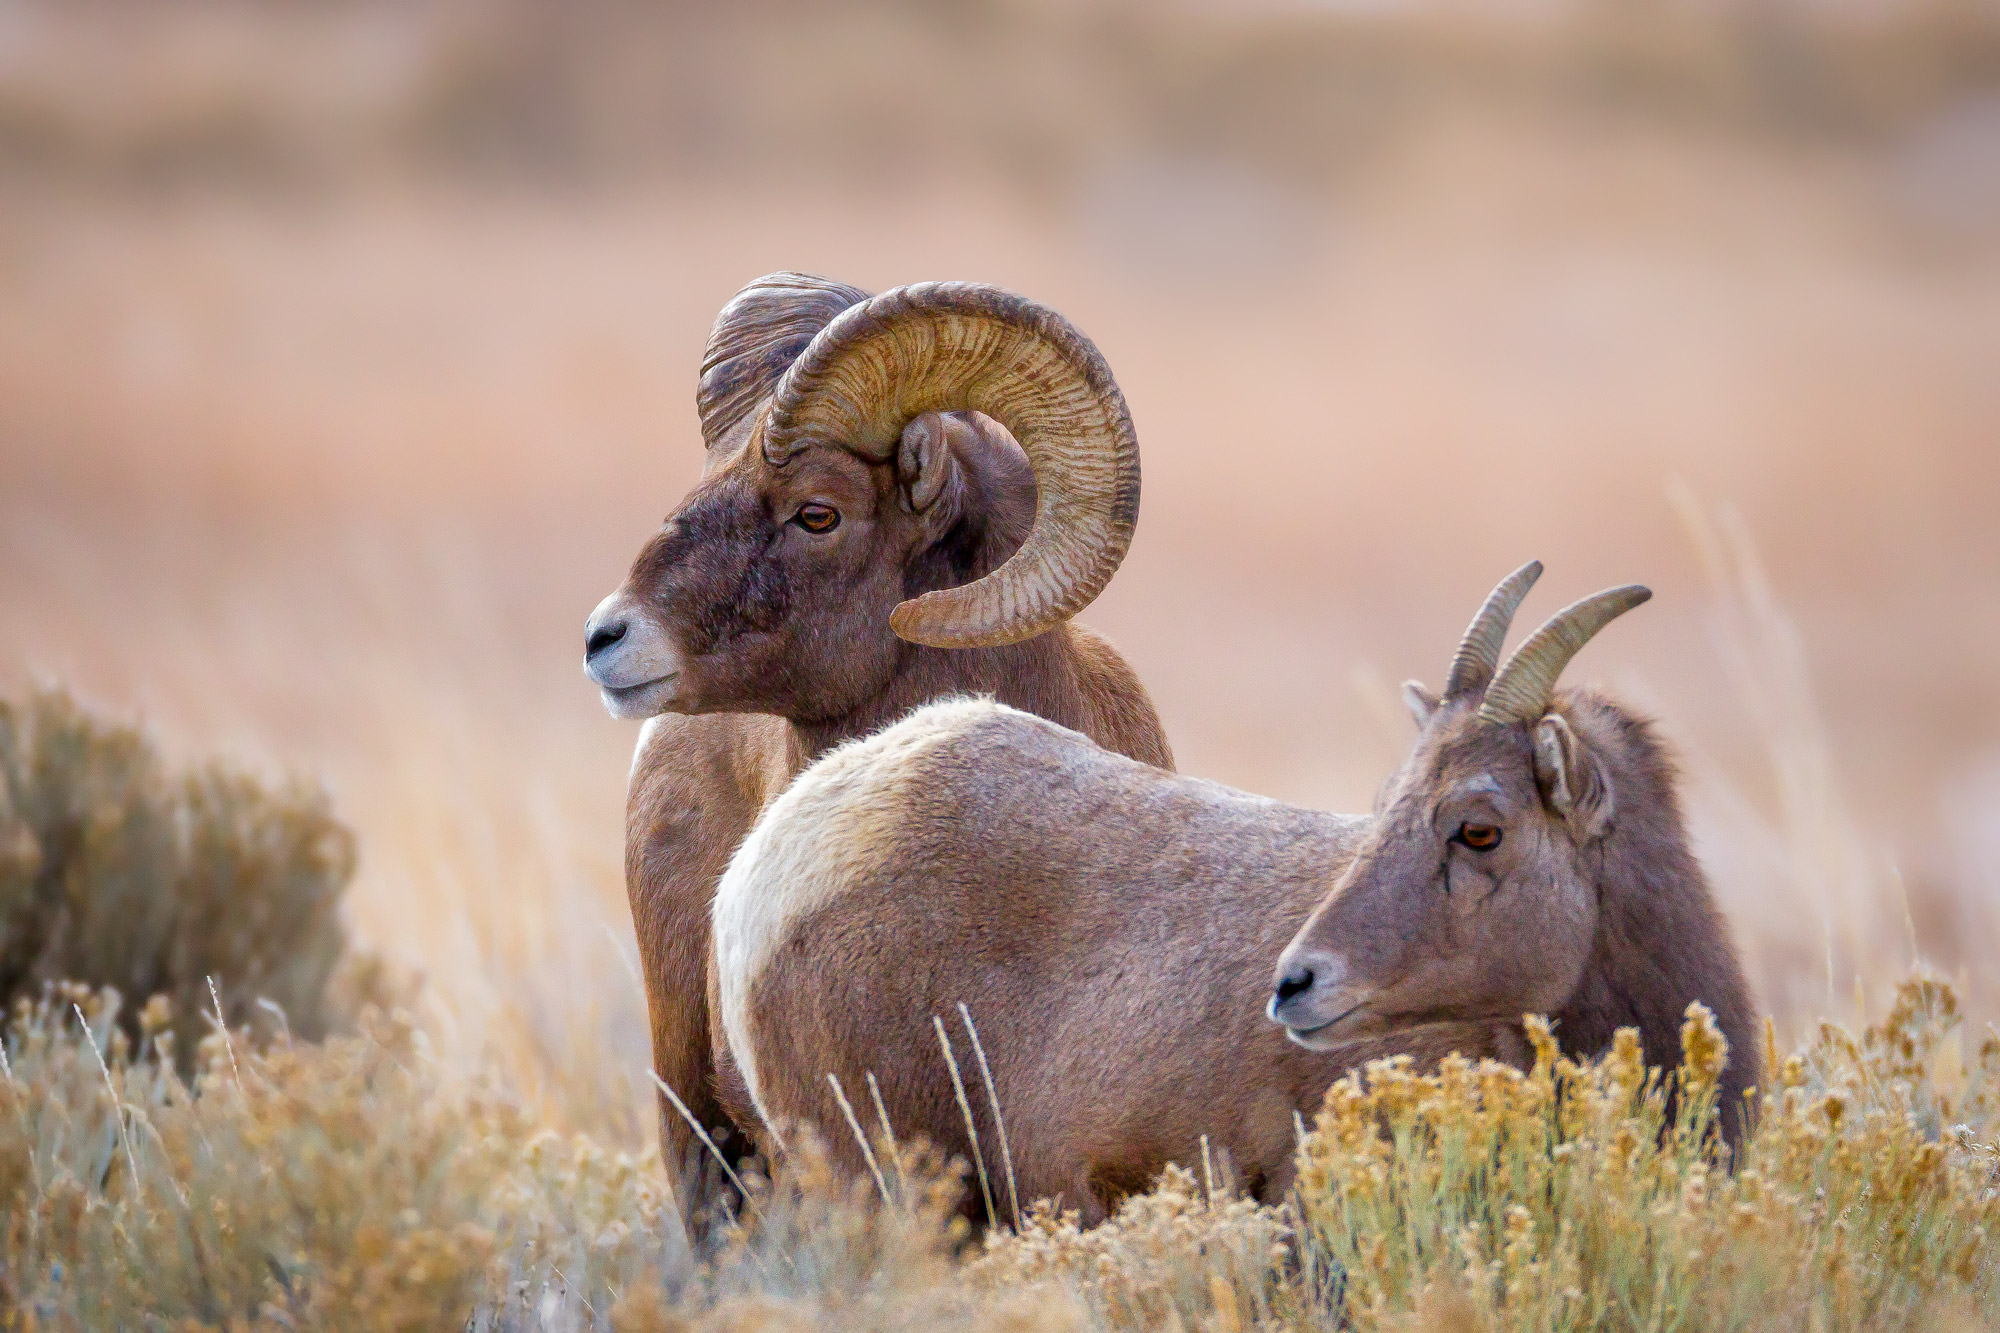 Bighorn, Sheep, Ram, Wyoming, limited edition, photograph, fine art, wildlife, photo